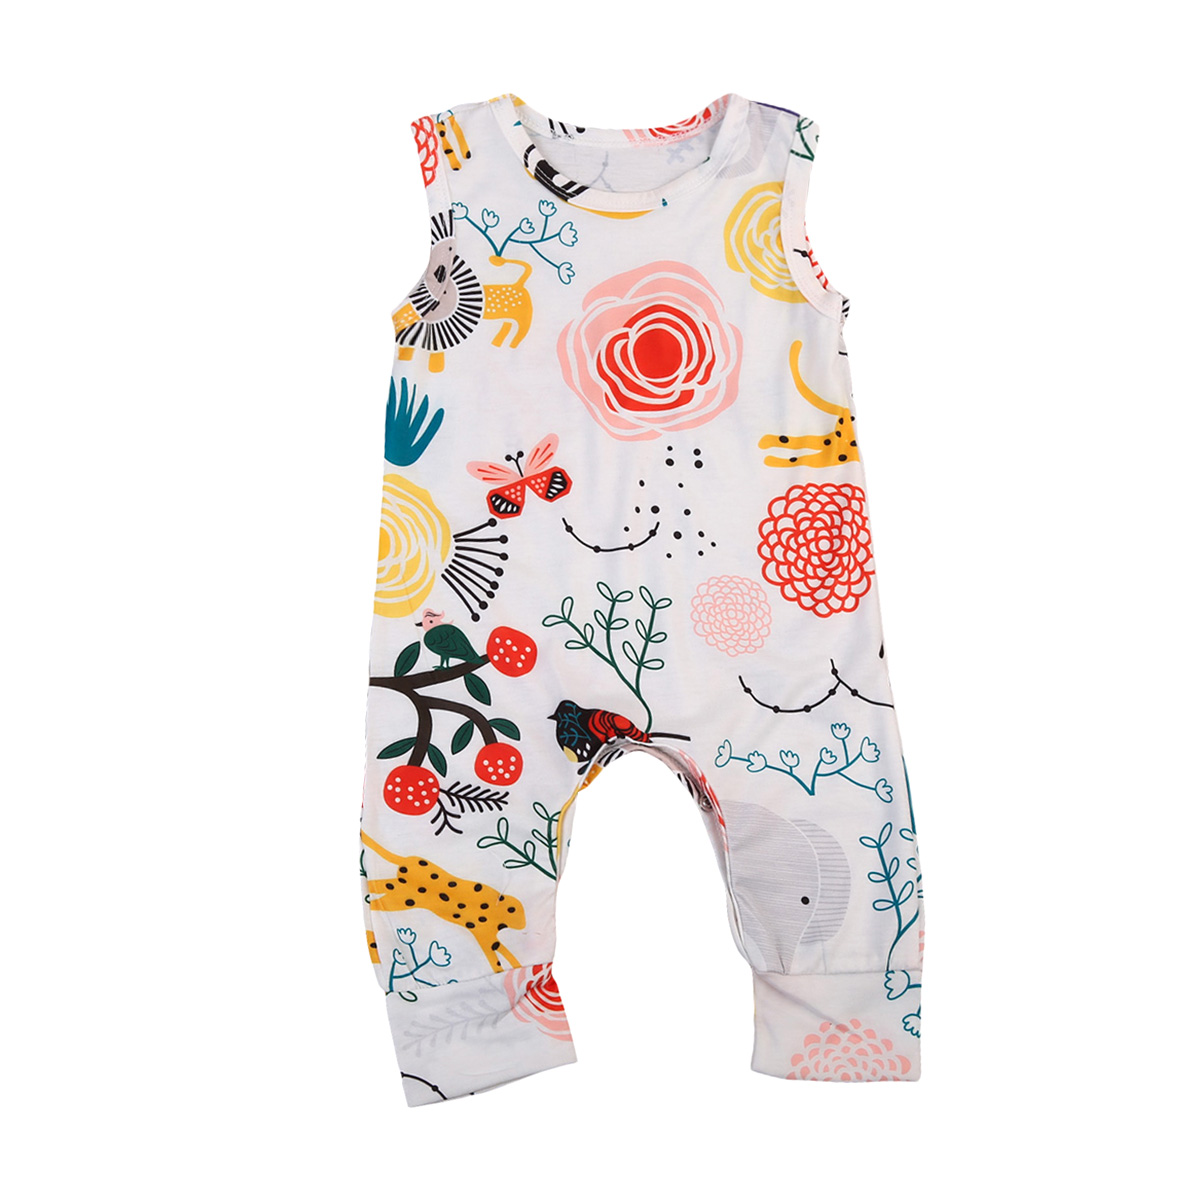 d27756dcb334 Pudcoco 2019 Summer Solid Newborn Baby Girl Boy Romper Sleeveless Jumpsuit  Outfits Sunsuit Casual Clothes